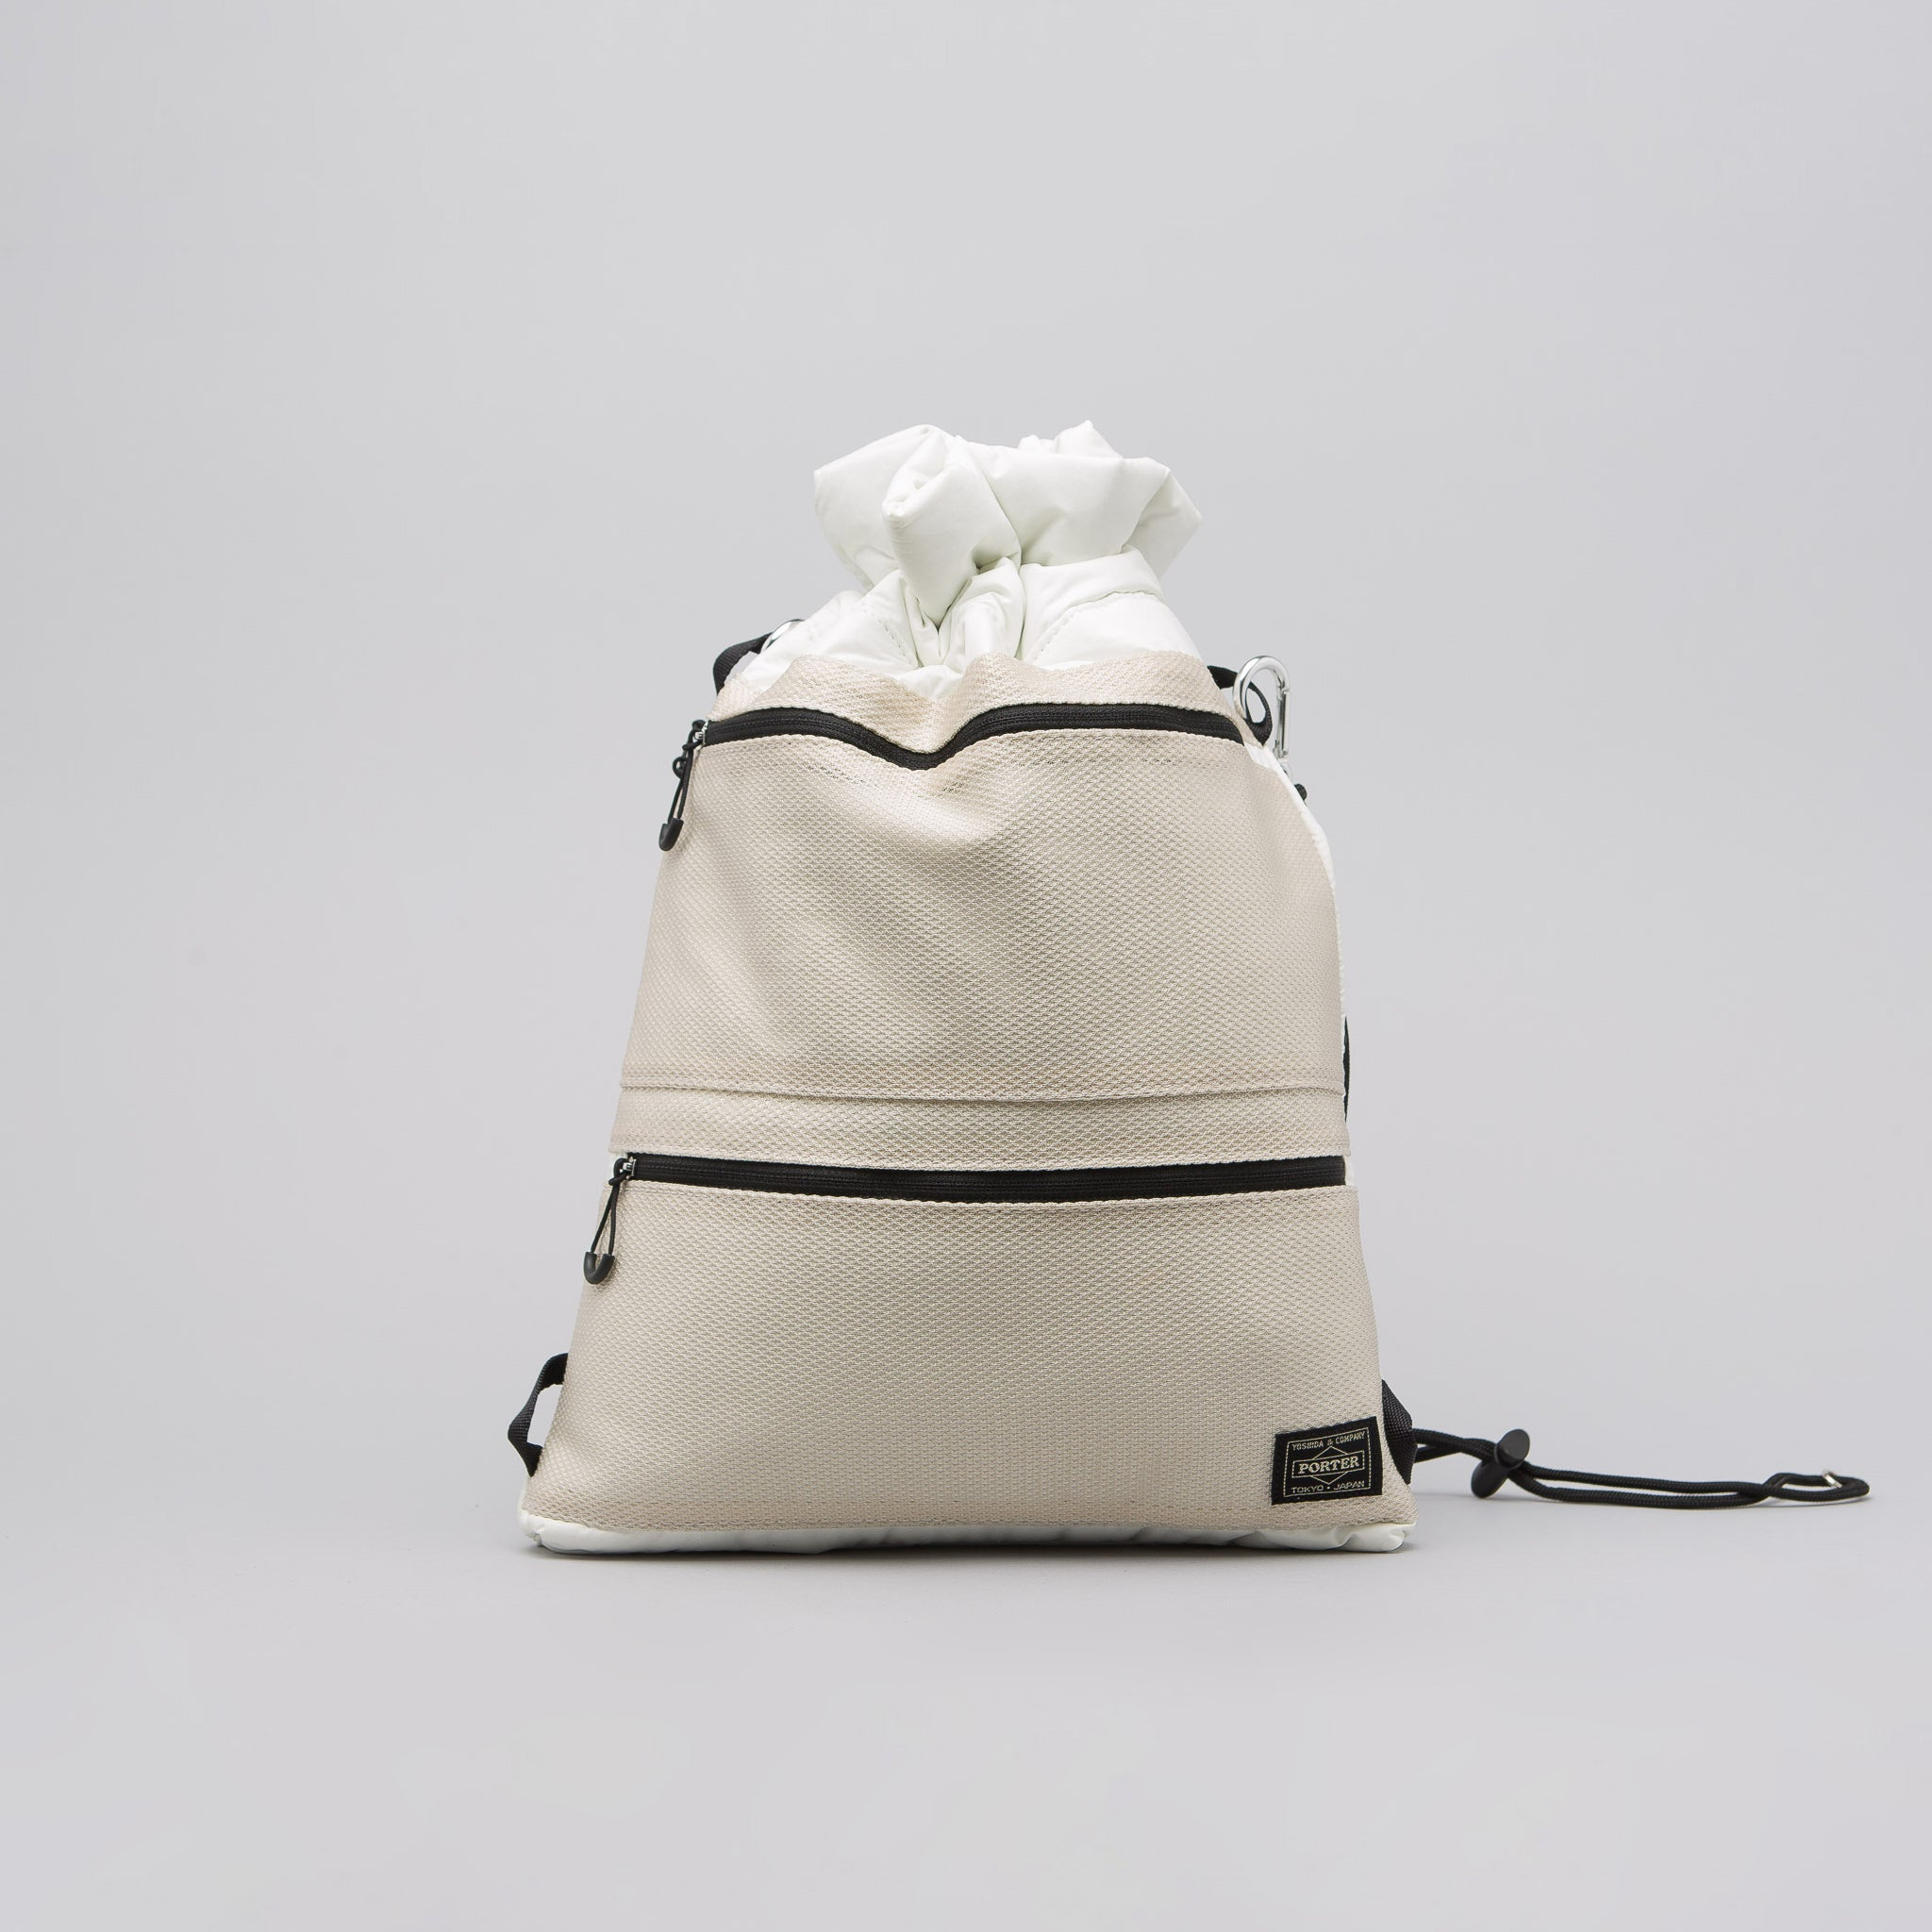 Lumiere Shoulder Bag in Ivory